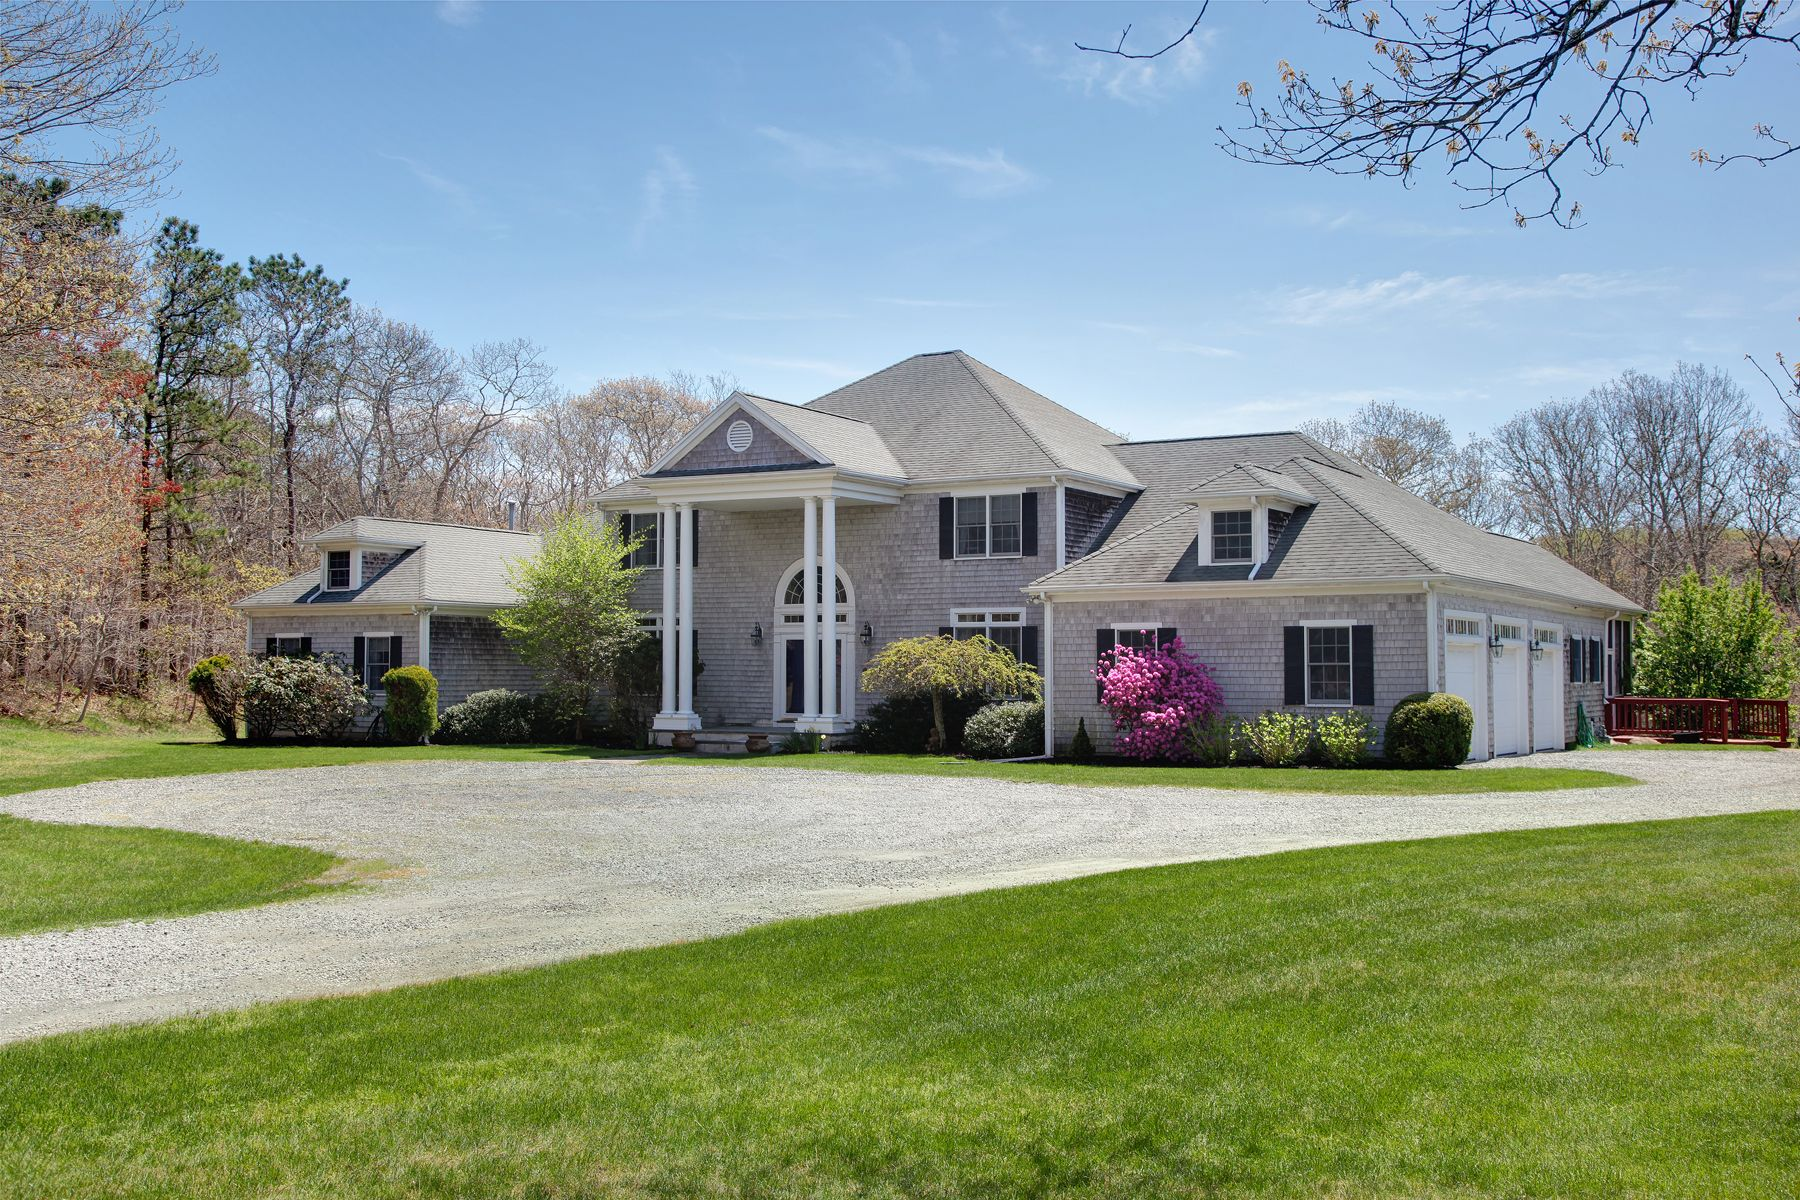 Single Family Home for Active at Sippewissett Pondfront Estate 352 Sippewissett Road Falmouth, Massachusetts 02540 United States